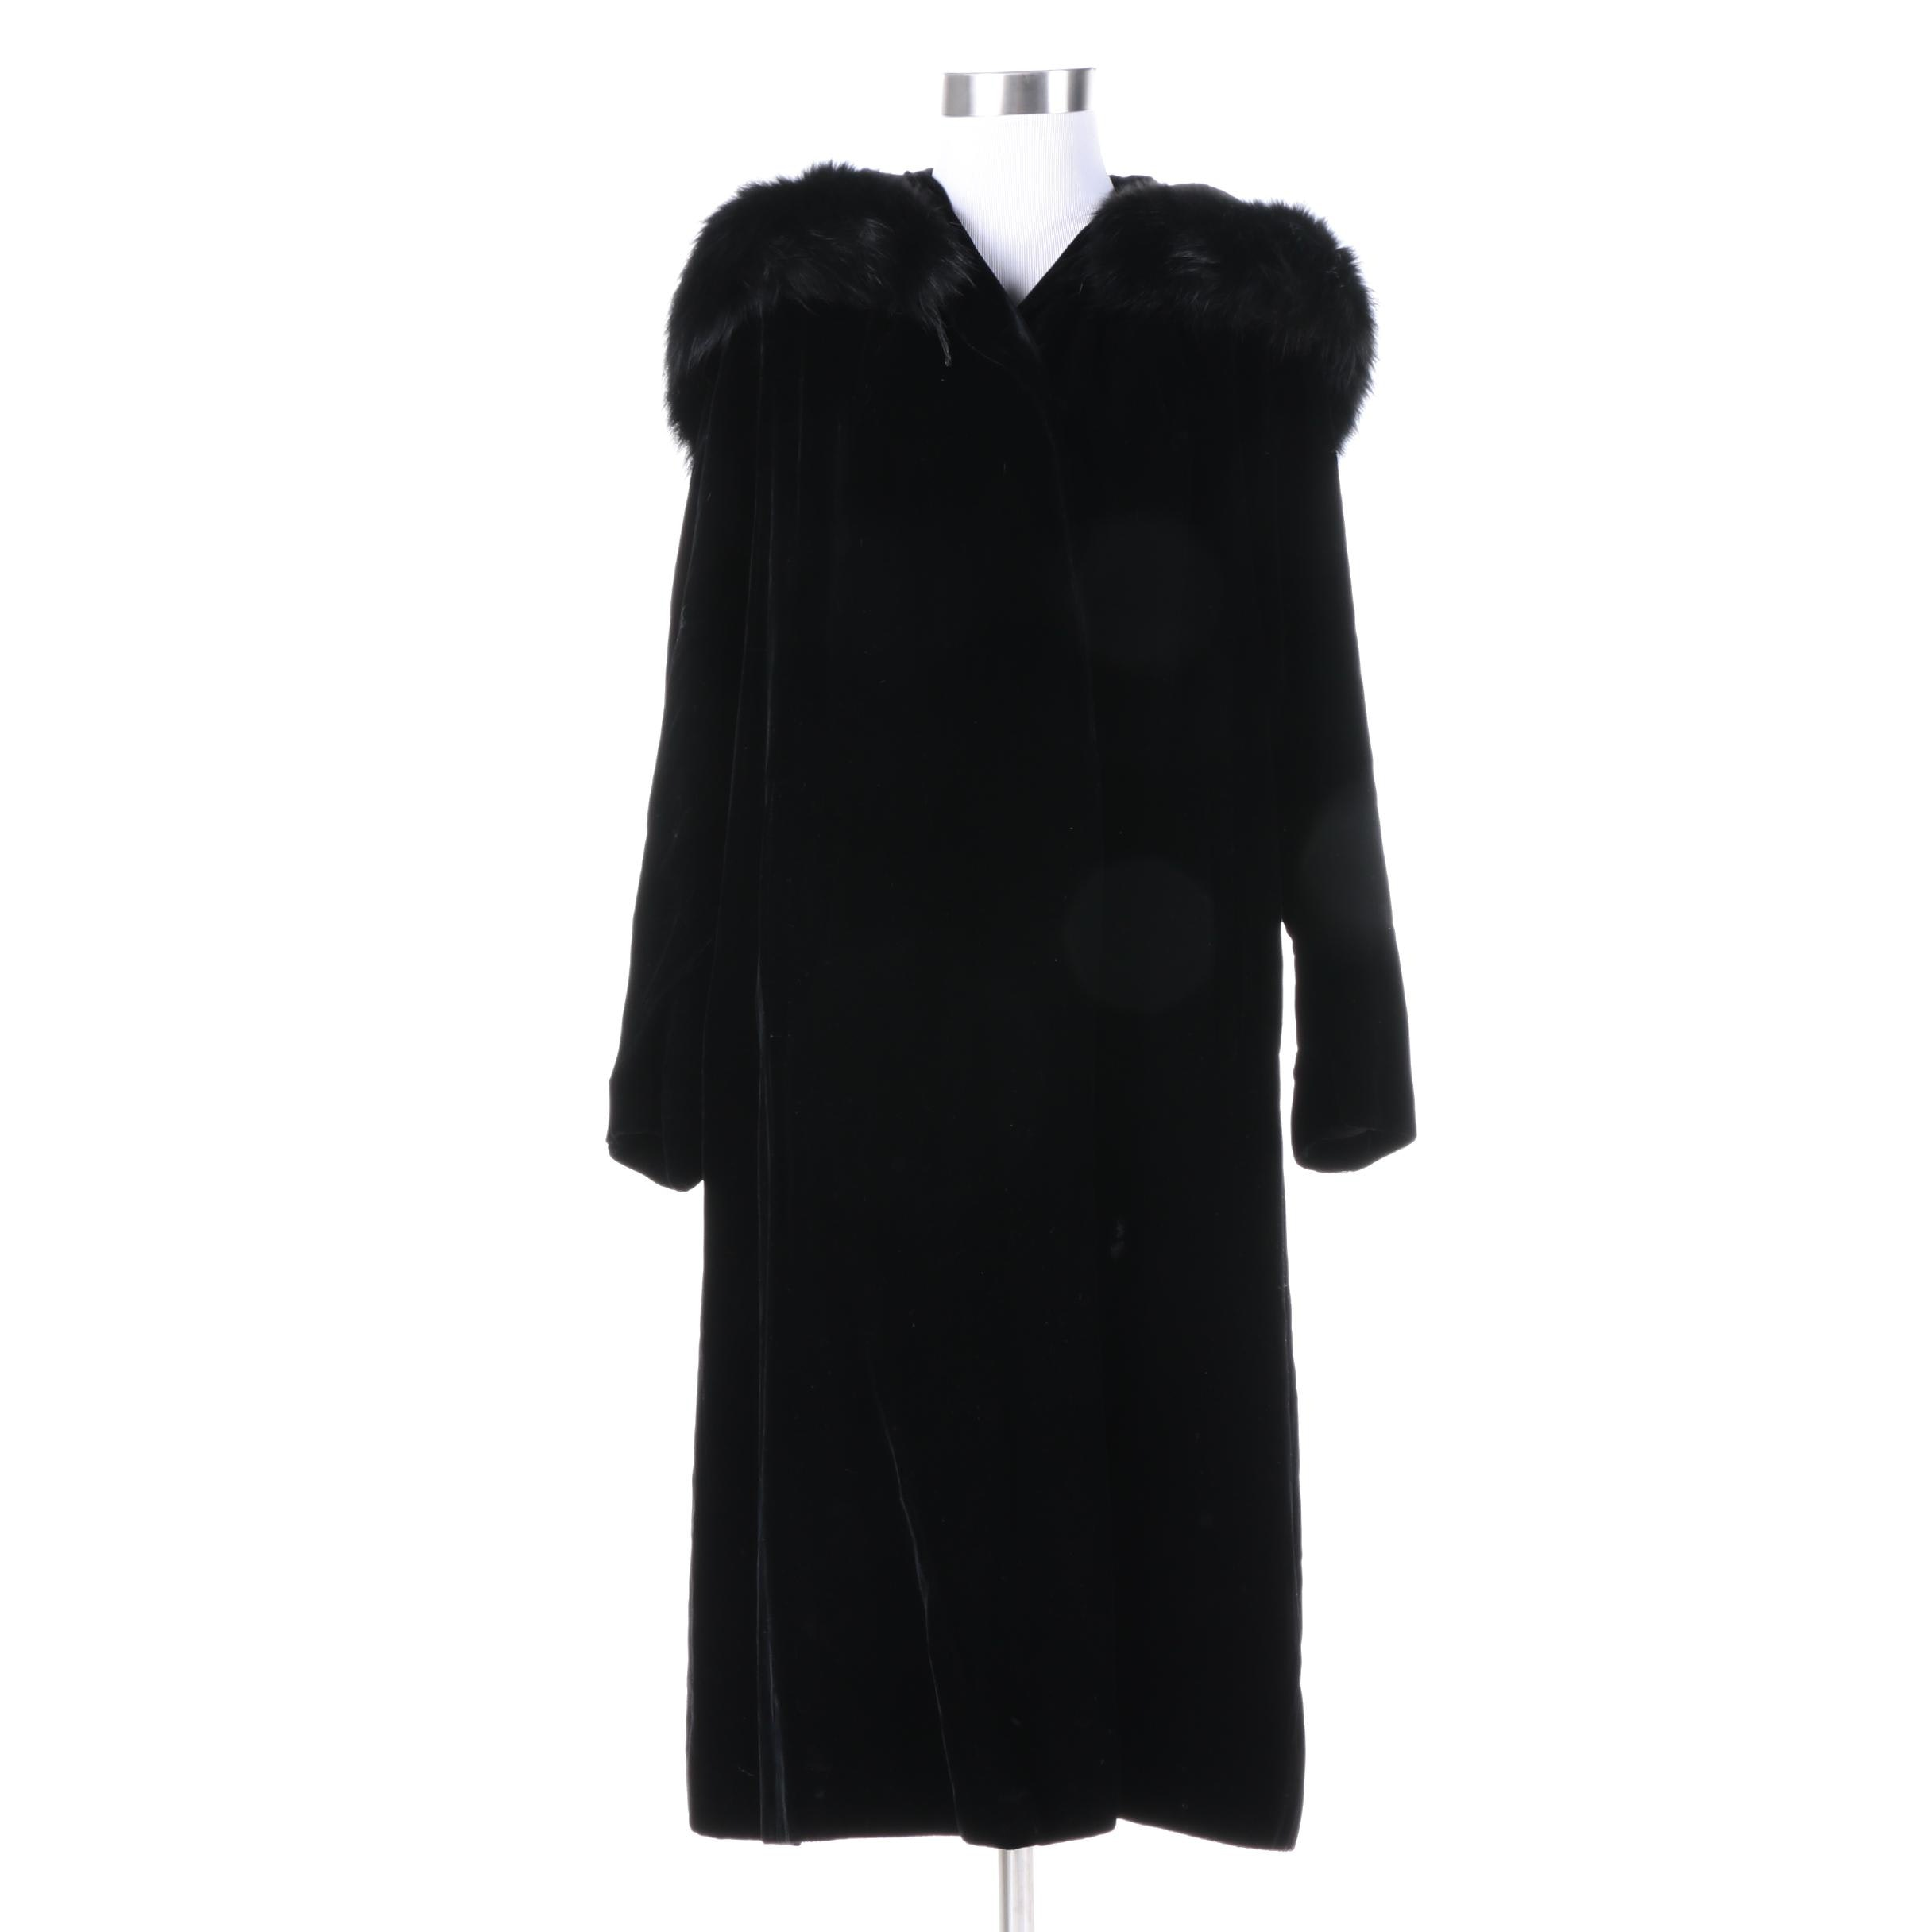 Women's Vintage Black Velvet Overcoat with Fox Fur Collar